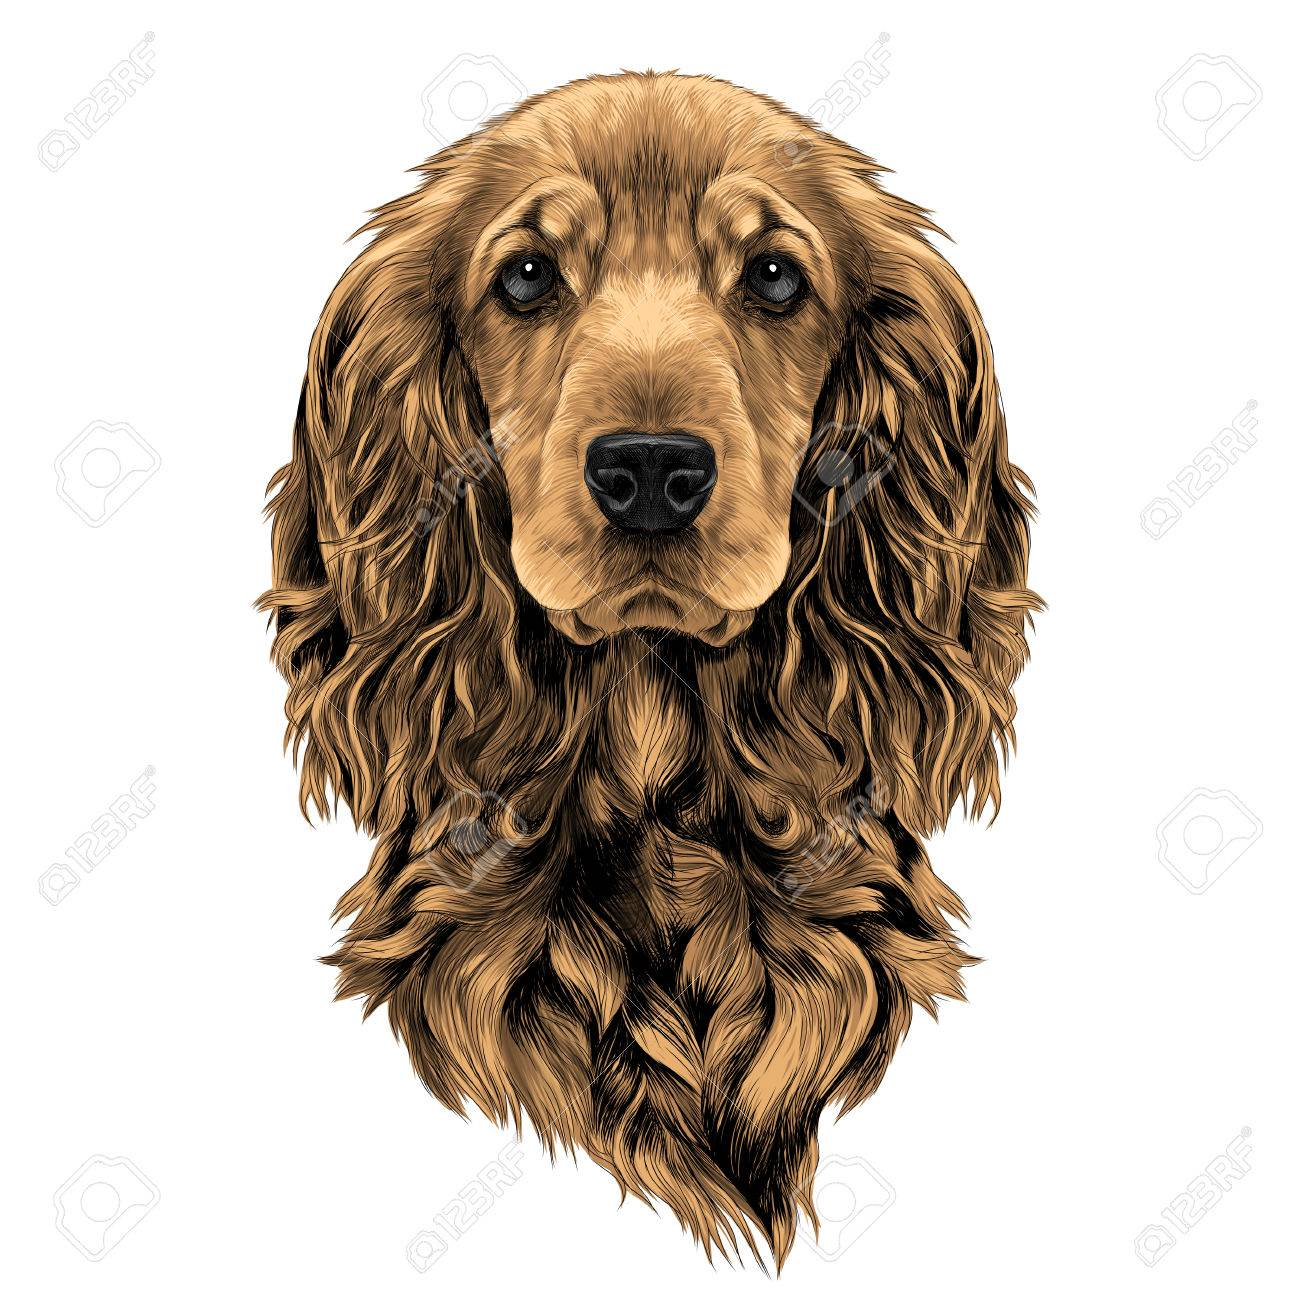 Dog Breed Cocker Spaniel Muzzle Sketch Vector Graphics Color Royalty Free Cliparts Vectors And Stock Illustration Image 80719279